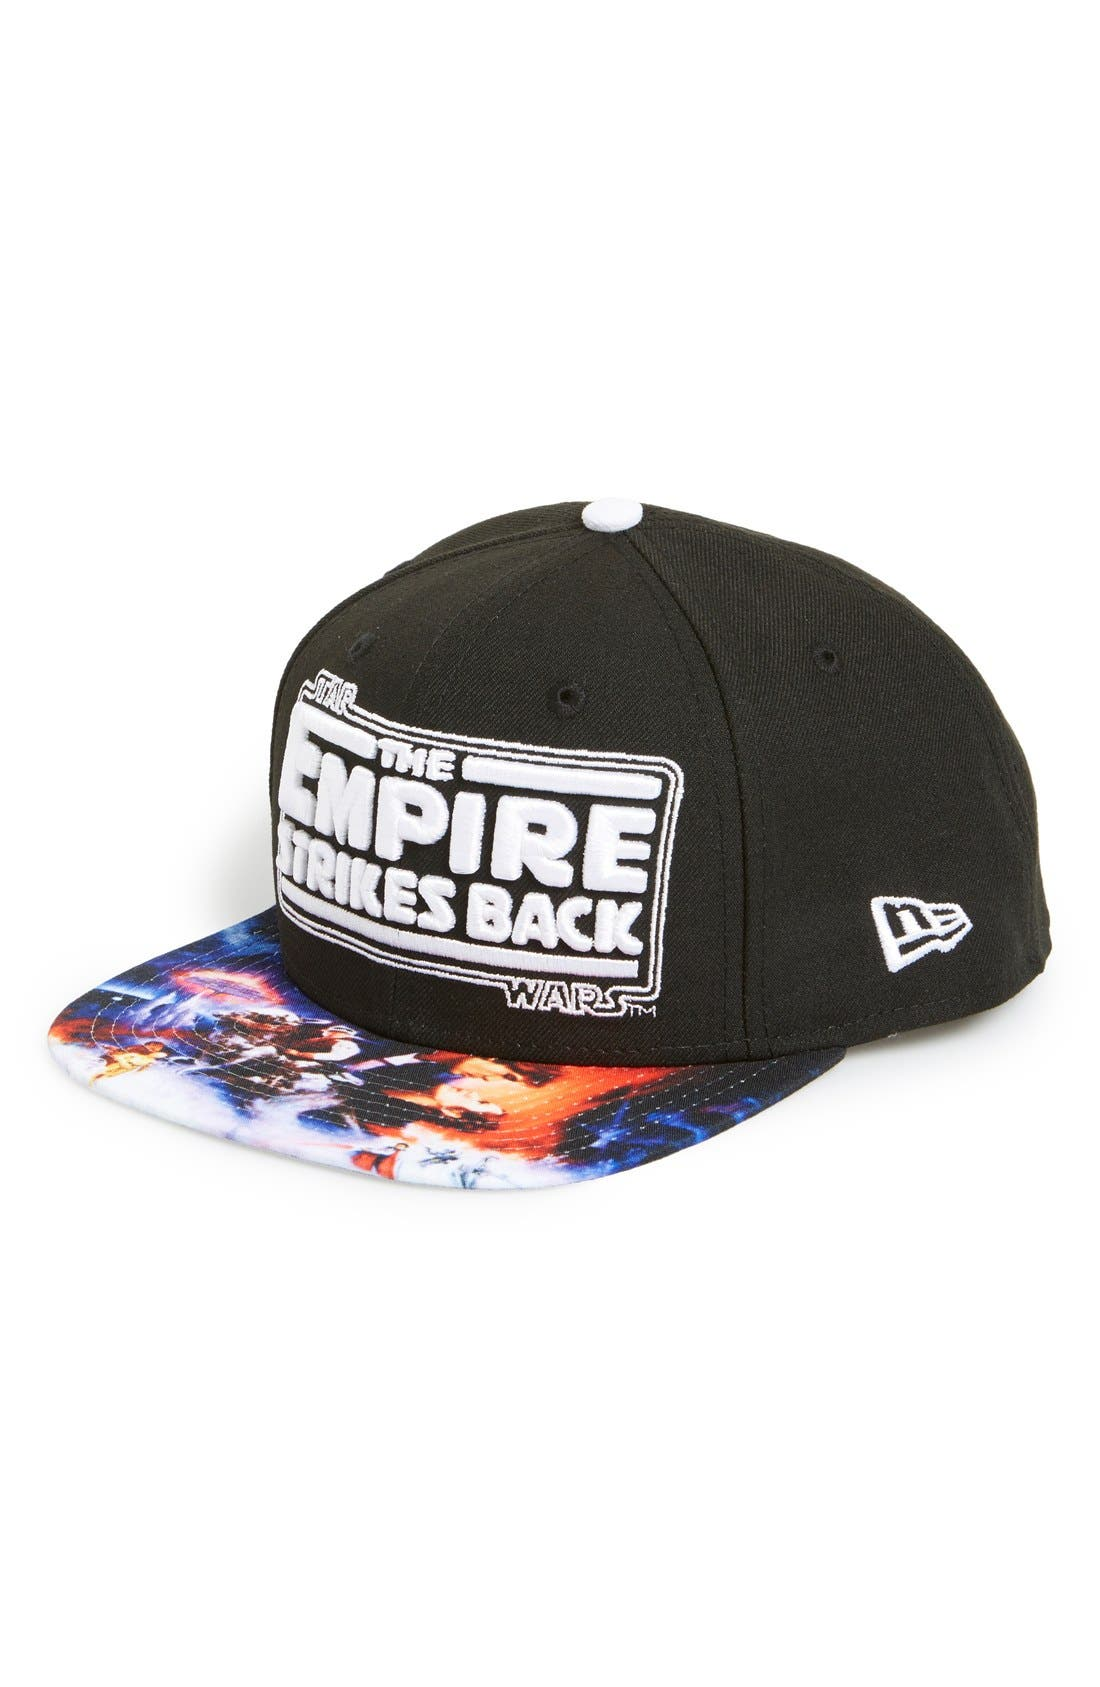 Alternate Image 1 Selected - New Era Cap 'Star Wars: The Empire Strikes Back' Snapback Cap